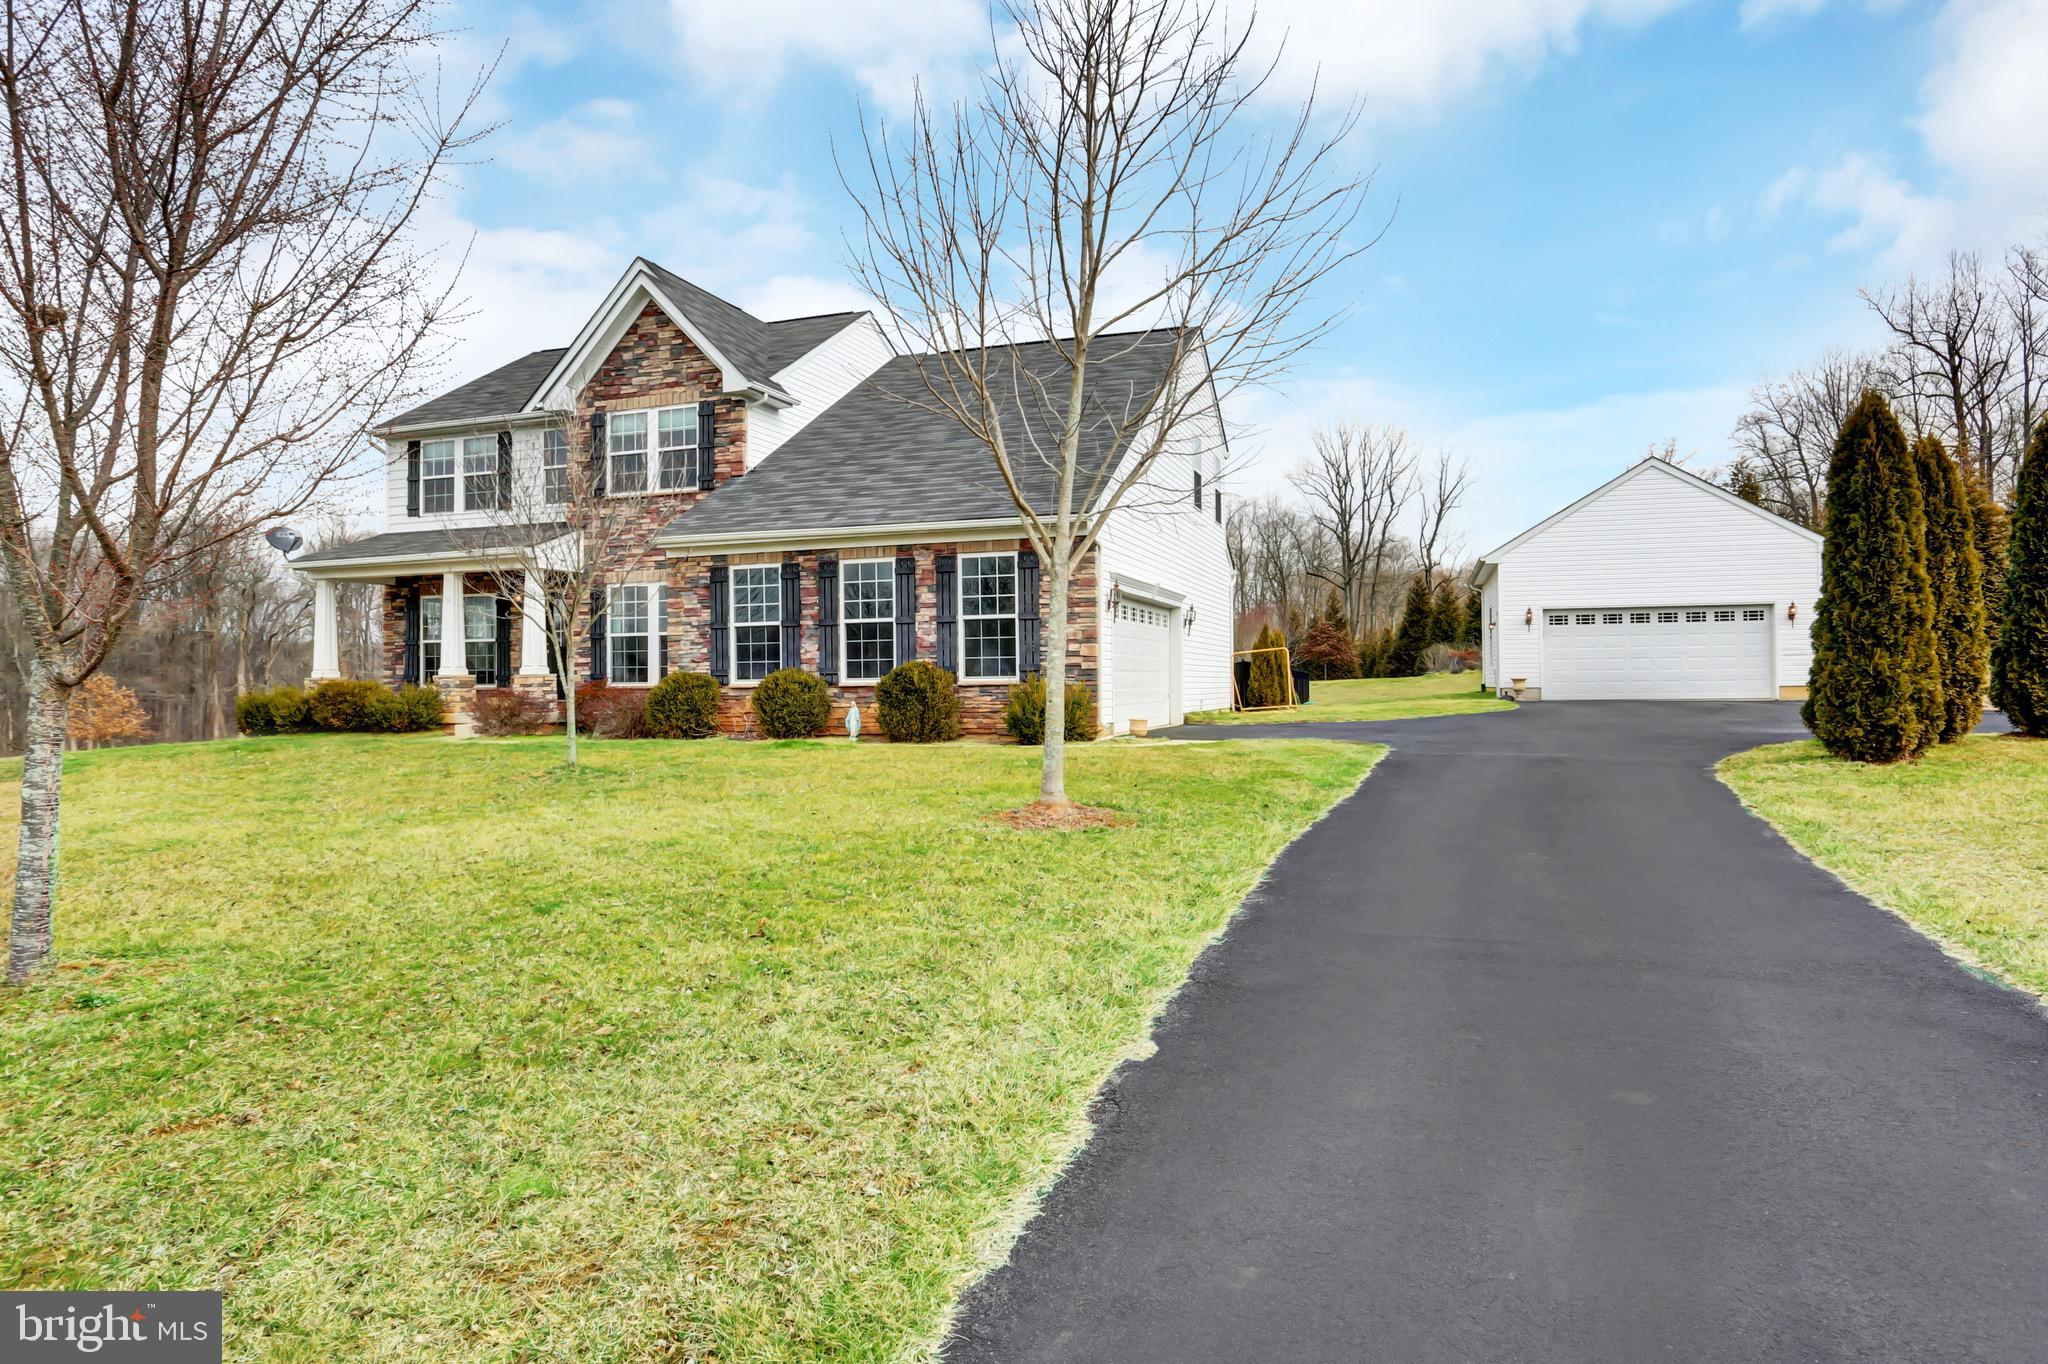 3311 INCLINE COURT, STREET, MD 21154